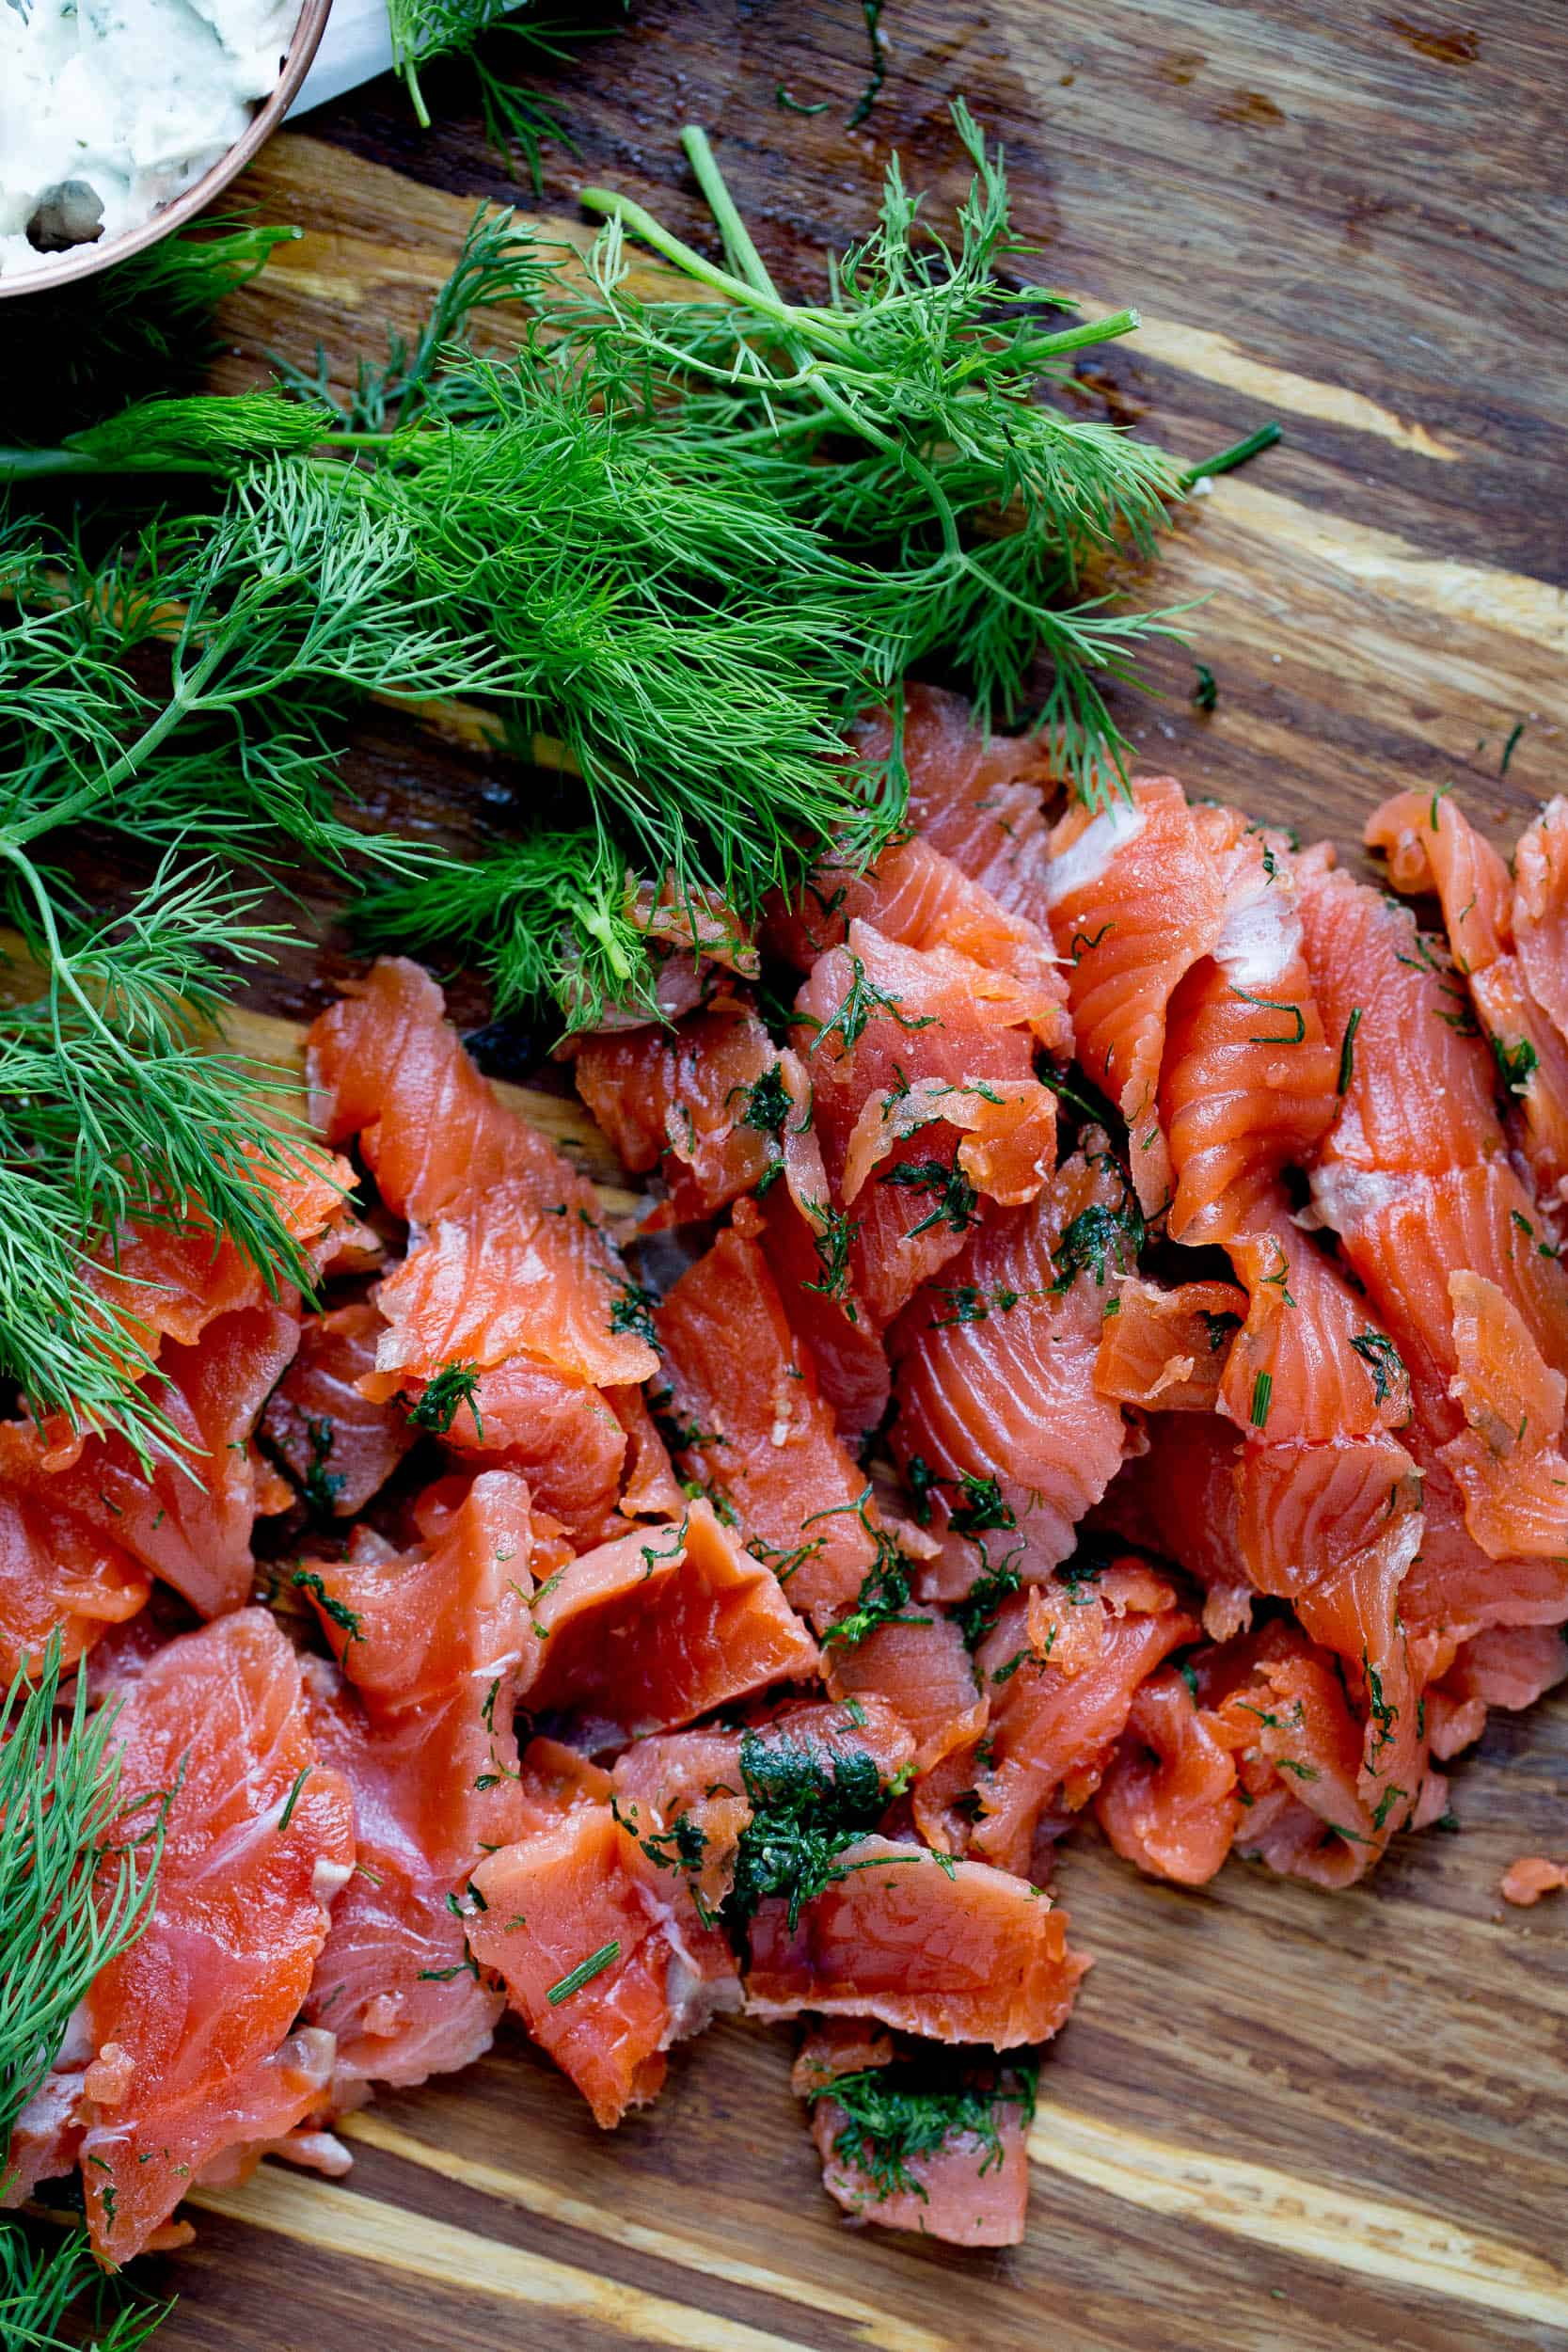 How to make Homemade Cured Salmon (Gravlax) | perrysplate.com